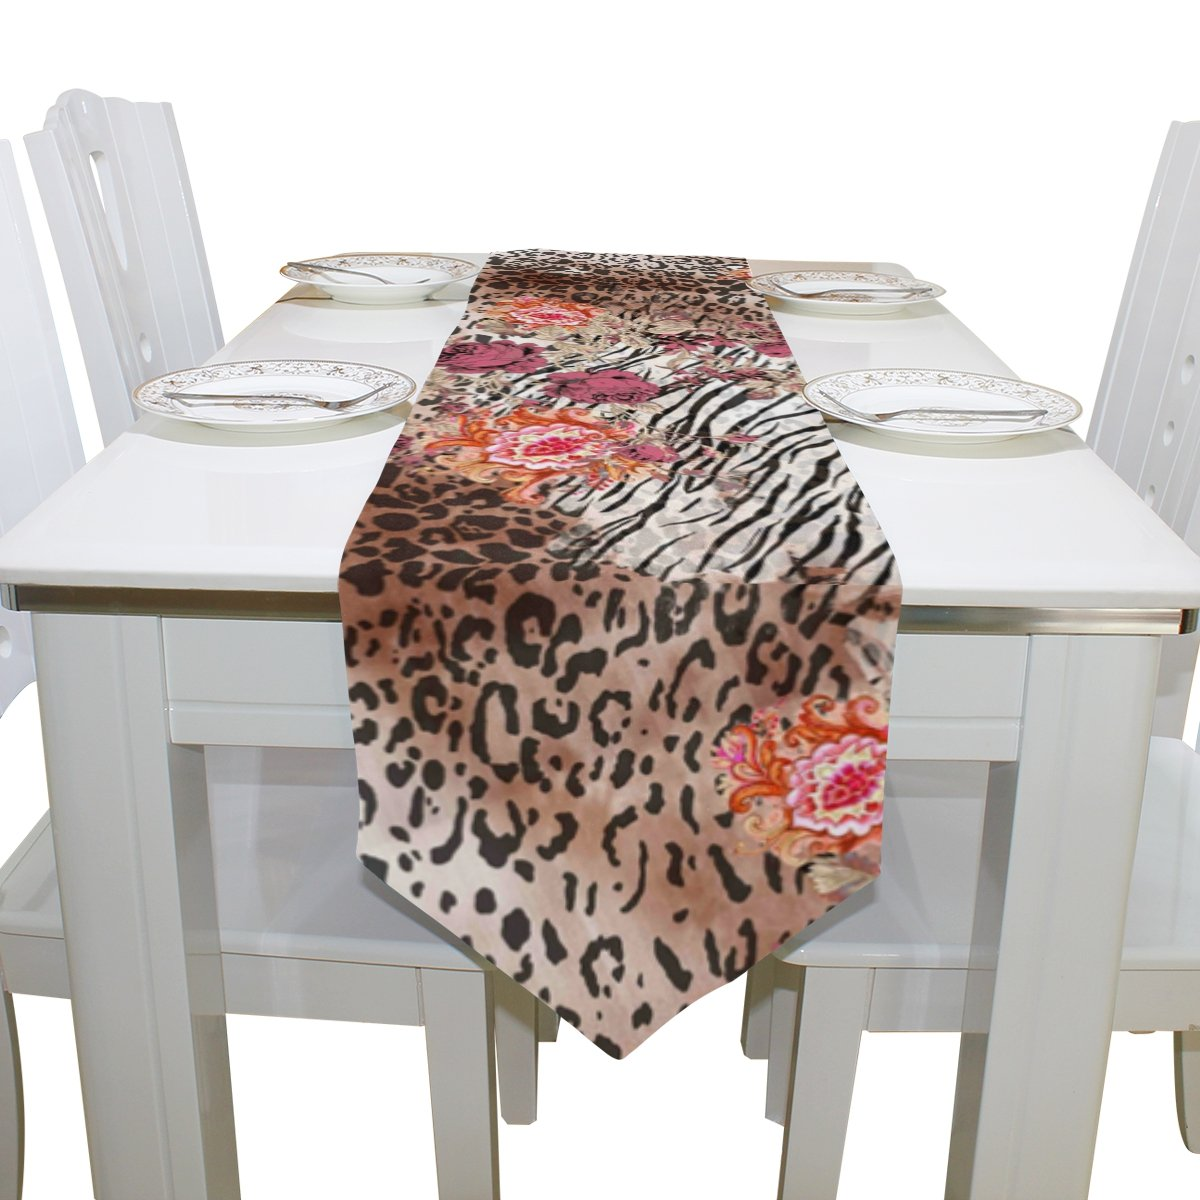 SAVSV 13 x 90 inch Fabric Table Runner Place Mats Animal Print And Flowers Mix for Kitchen Dining Wedding Party Table Decor Party Decoration